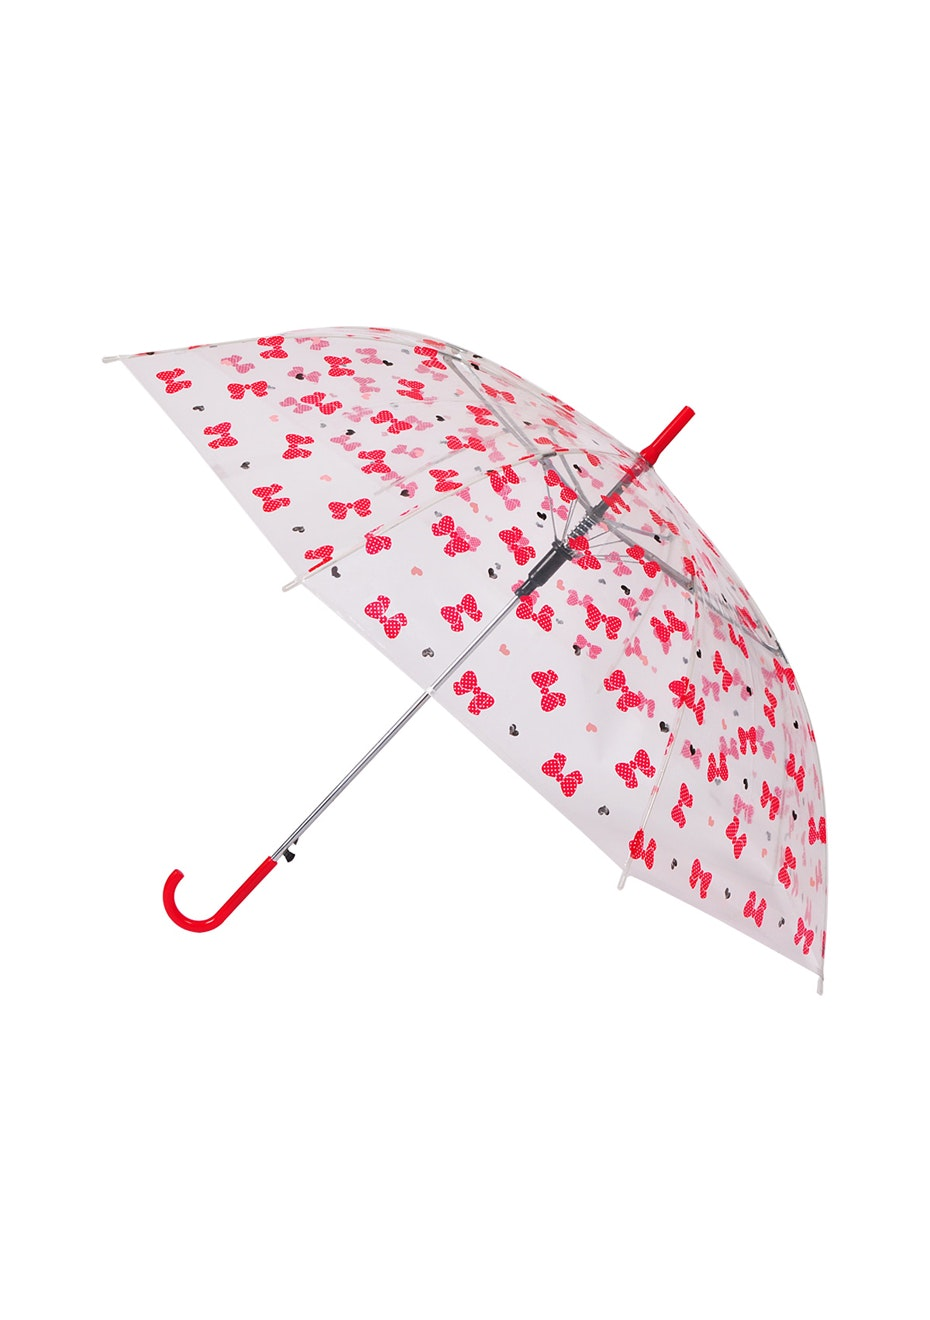 Little Ray Of Sunshine Umbrella - Red Bows